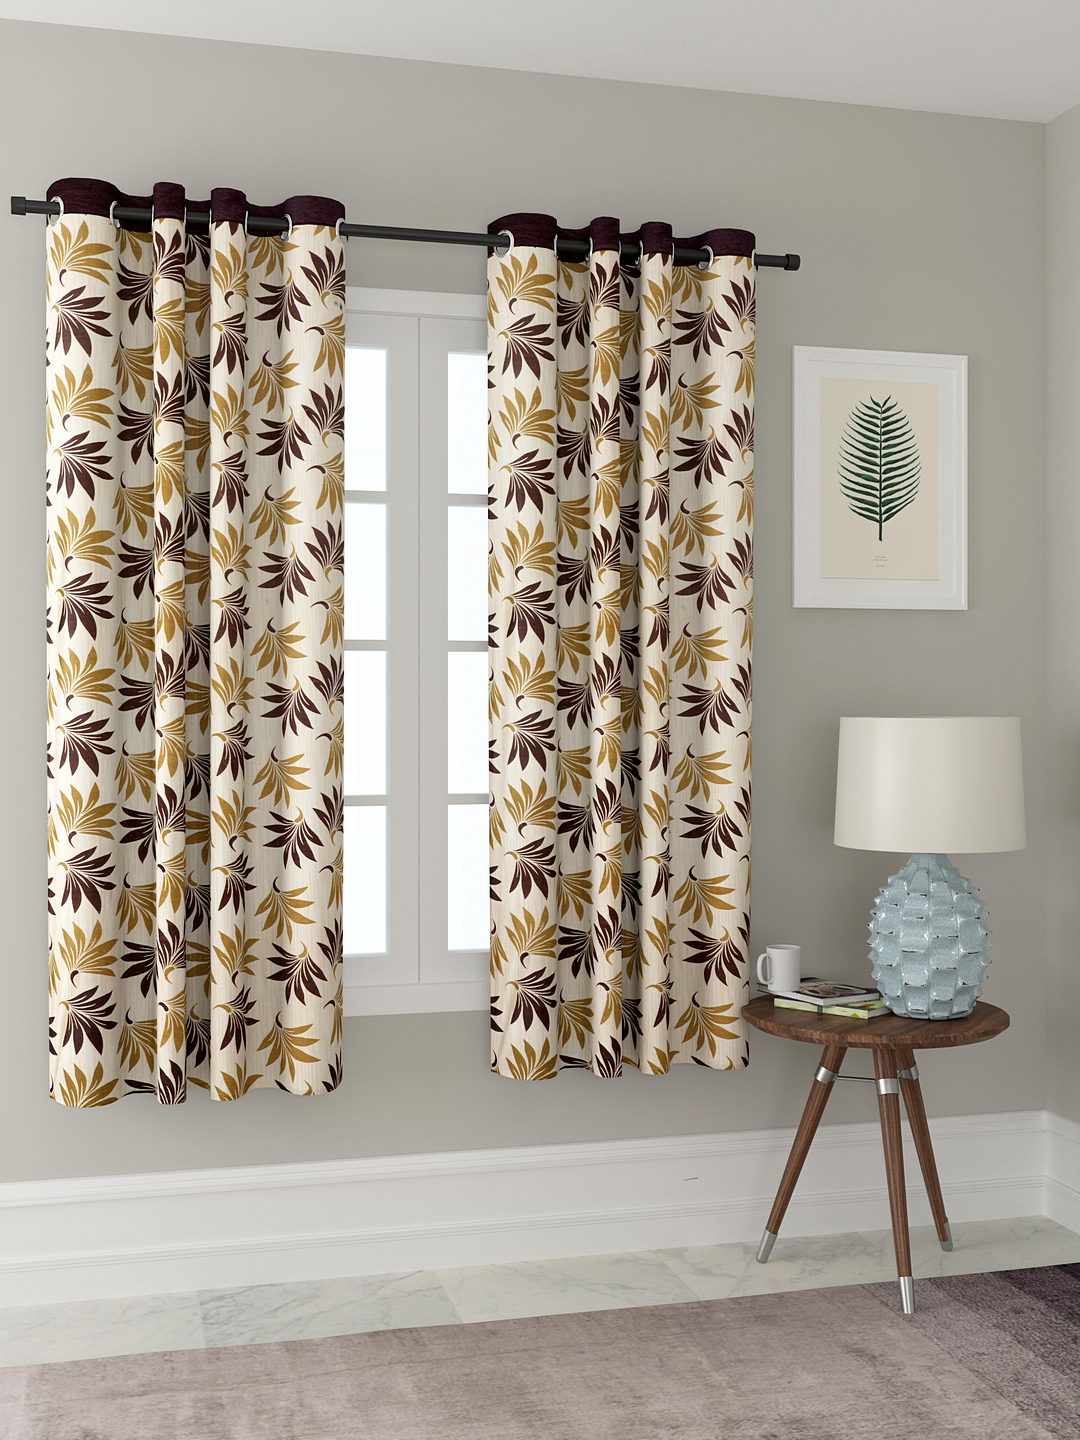 Polyester Printed Window Curtains for Bedroom, Kitchen, Kids or Living Room-022_Set of 2